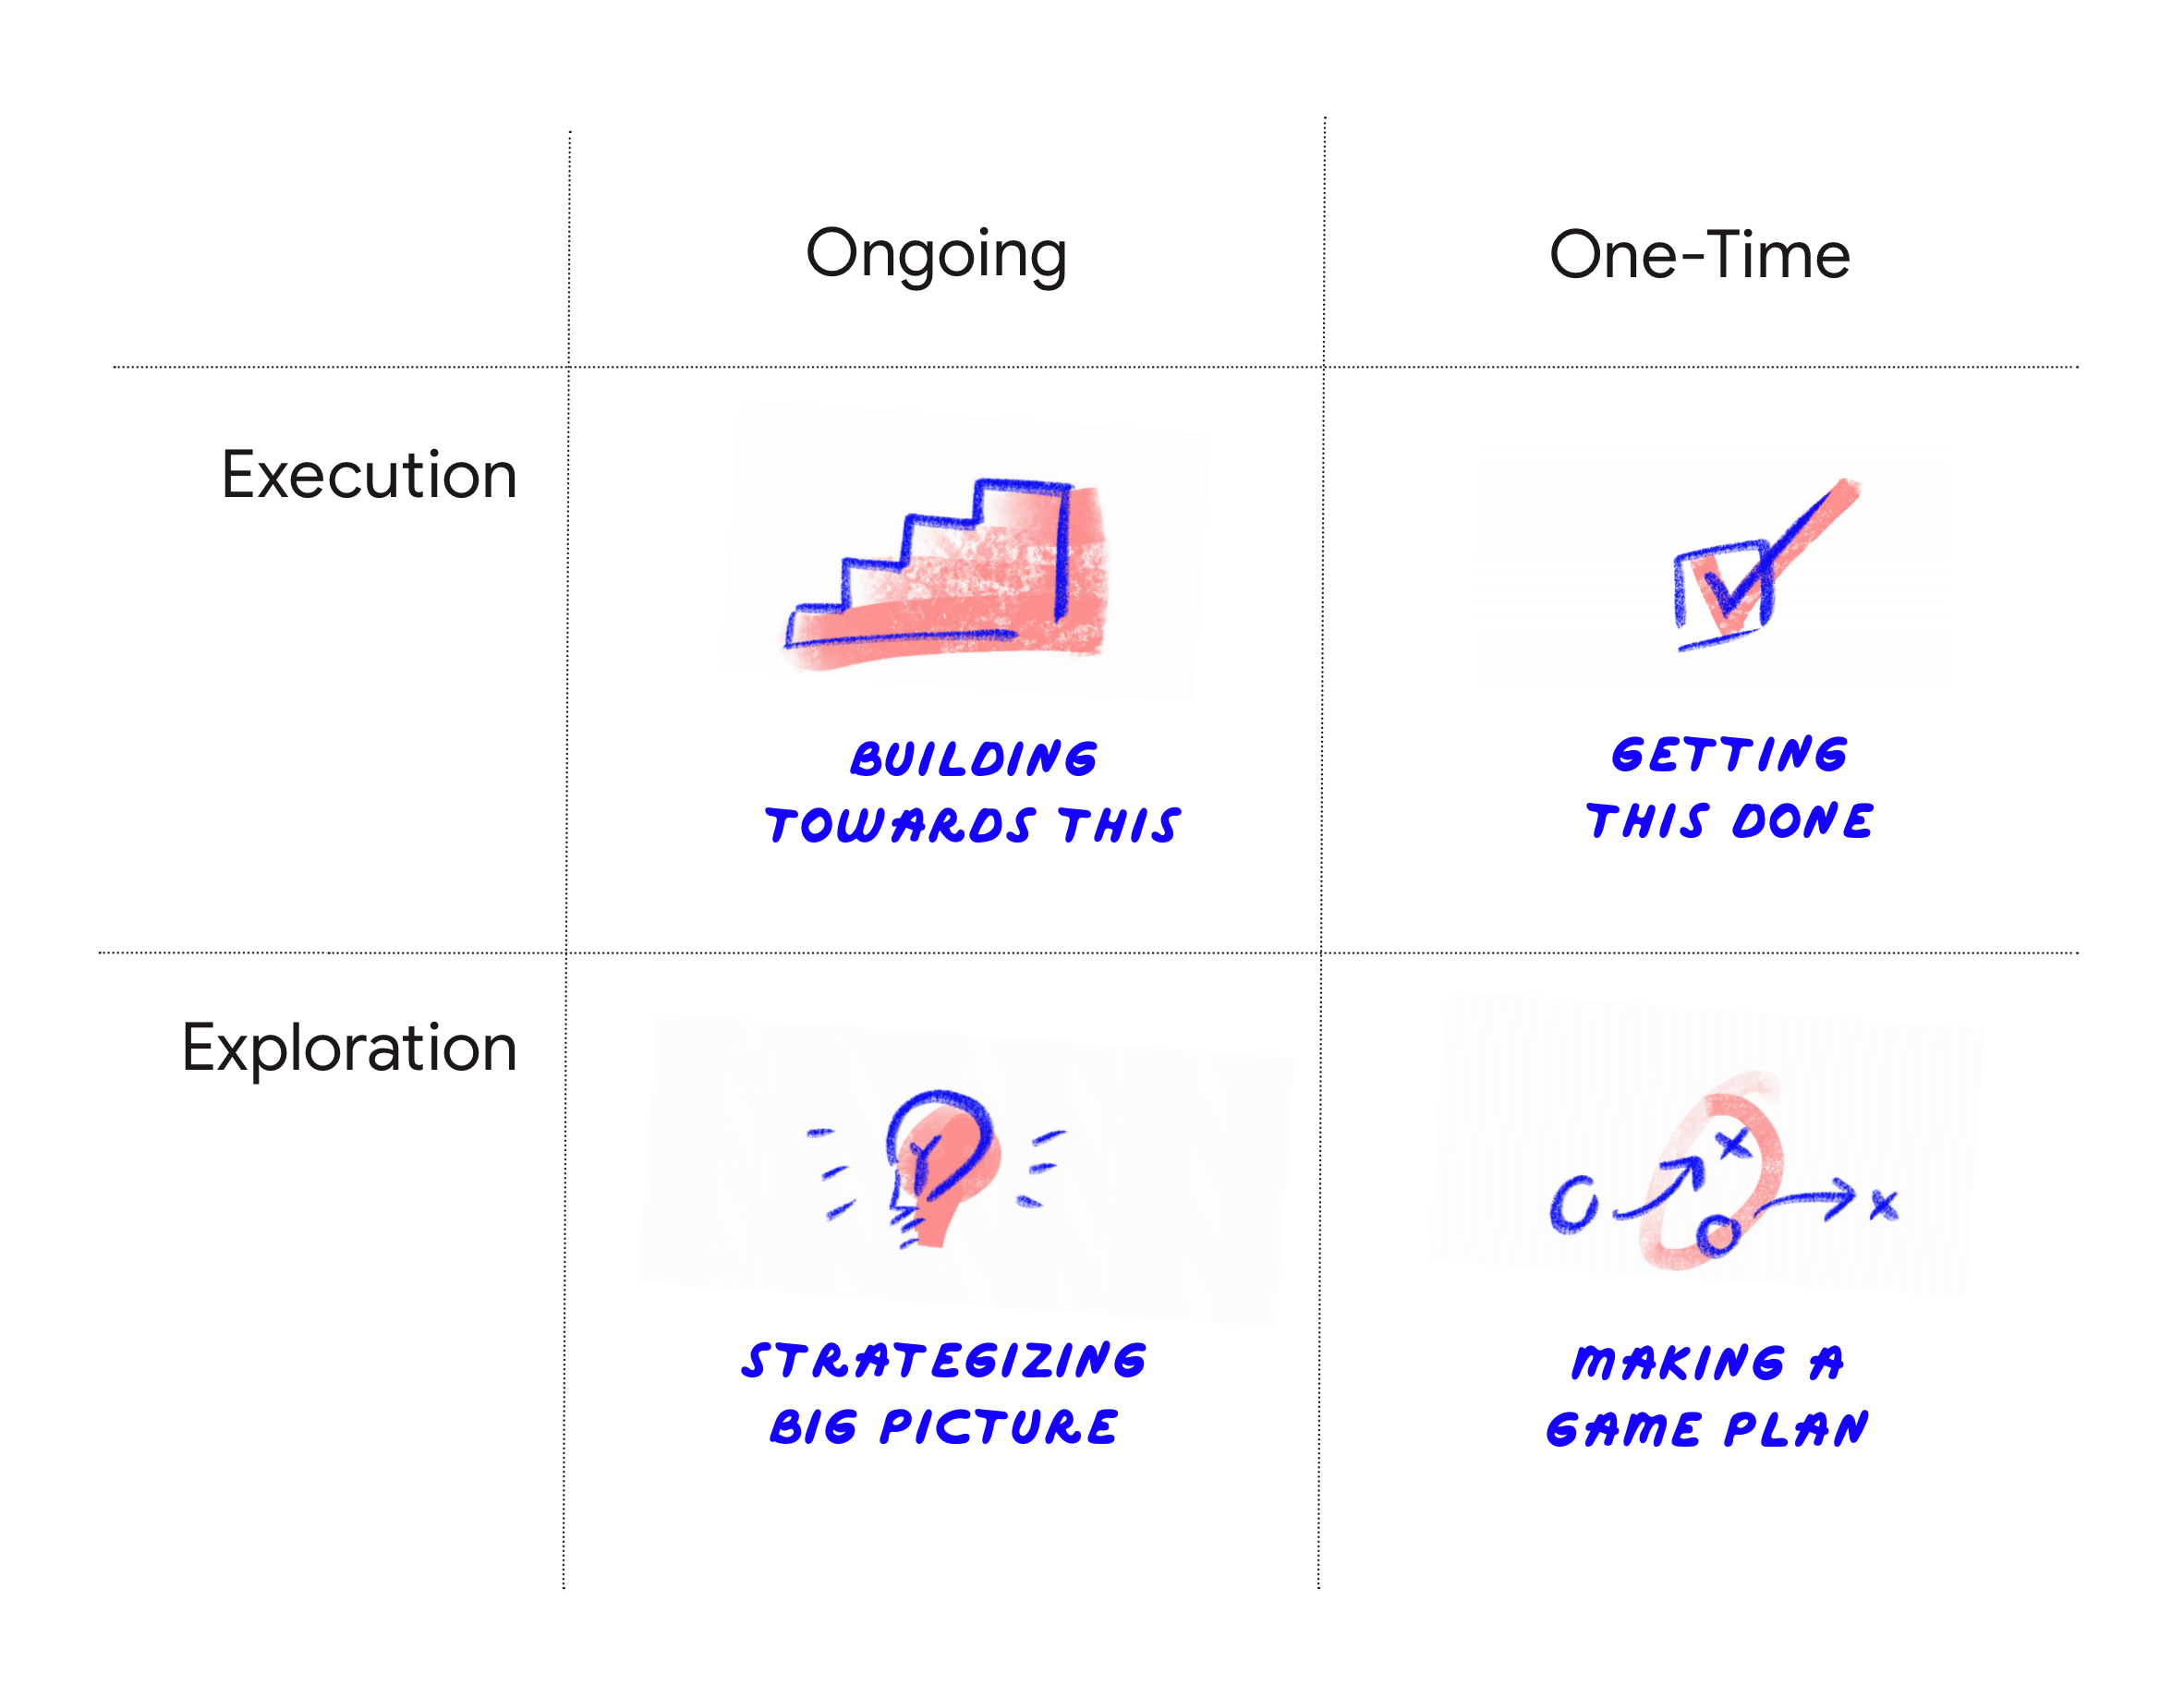 4 goal quadrants, described in body text: Building towards this, Getting this done,Strategizing big picture, Making game plan